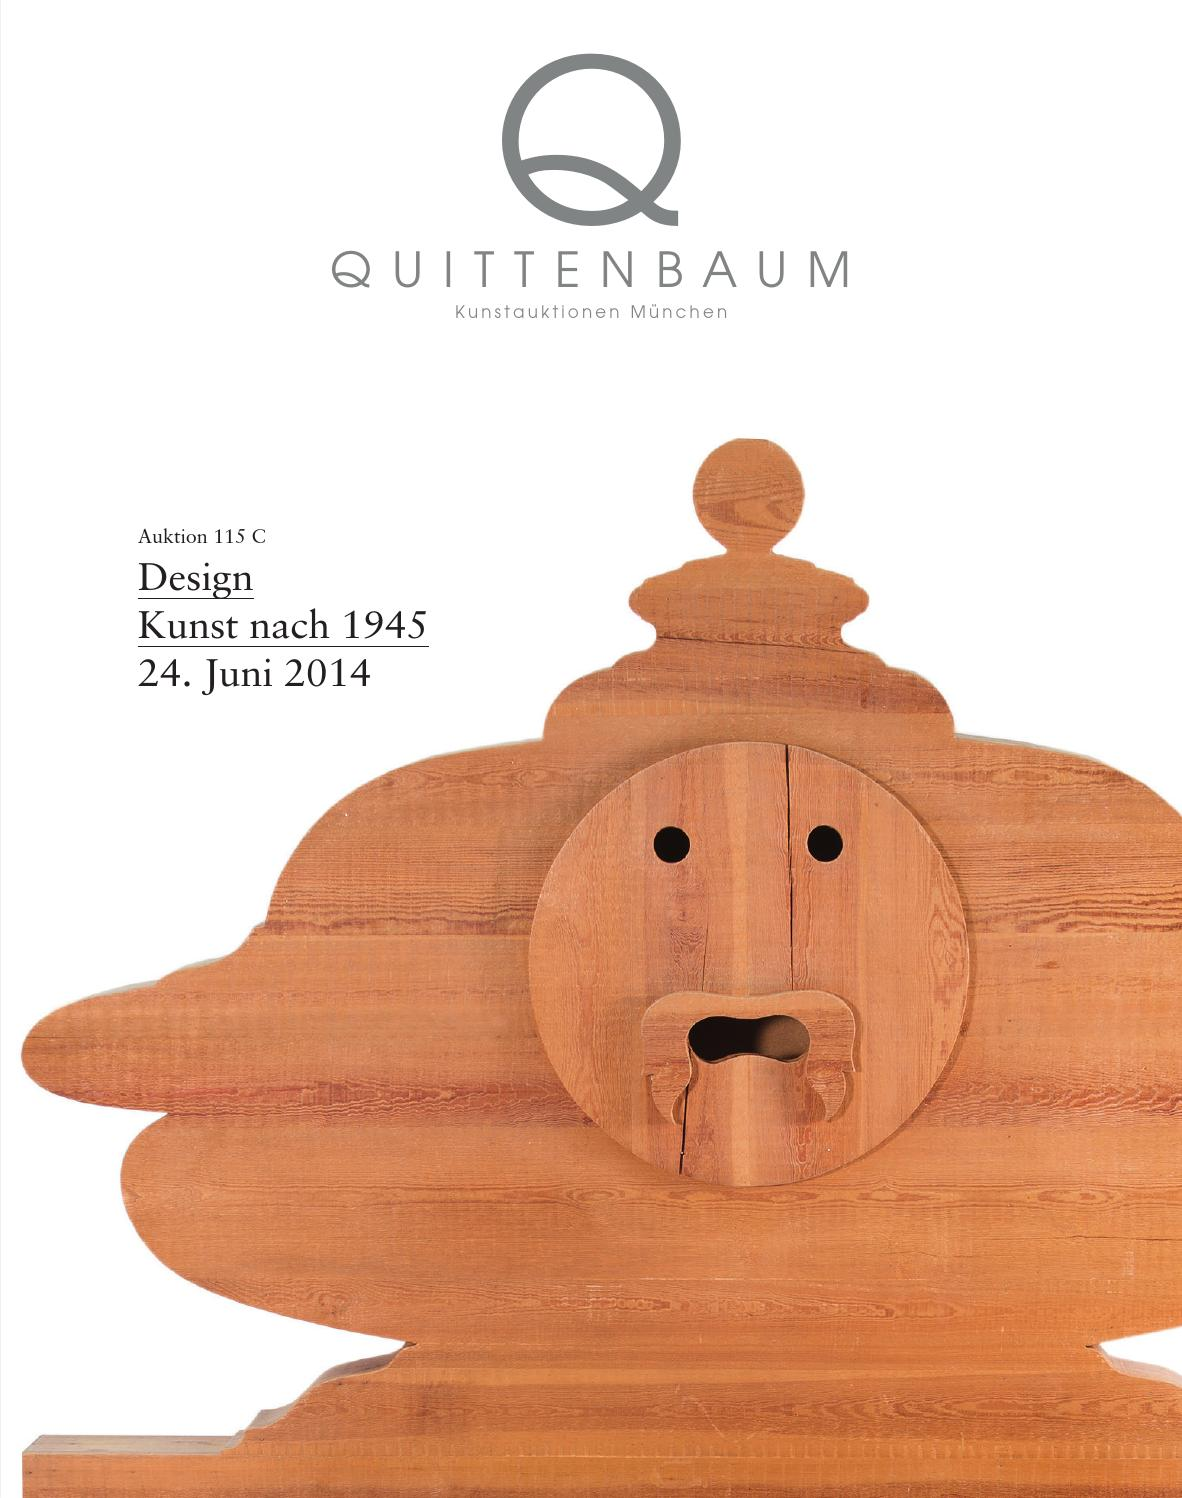 Auction 115c Design Post War And Contemporary Art Quittenbaum Art Auctions By Quittenbaum Kunstauktionen Gmbh Issuu